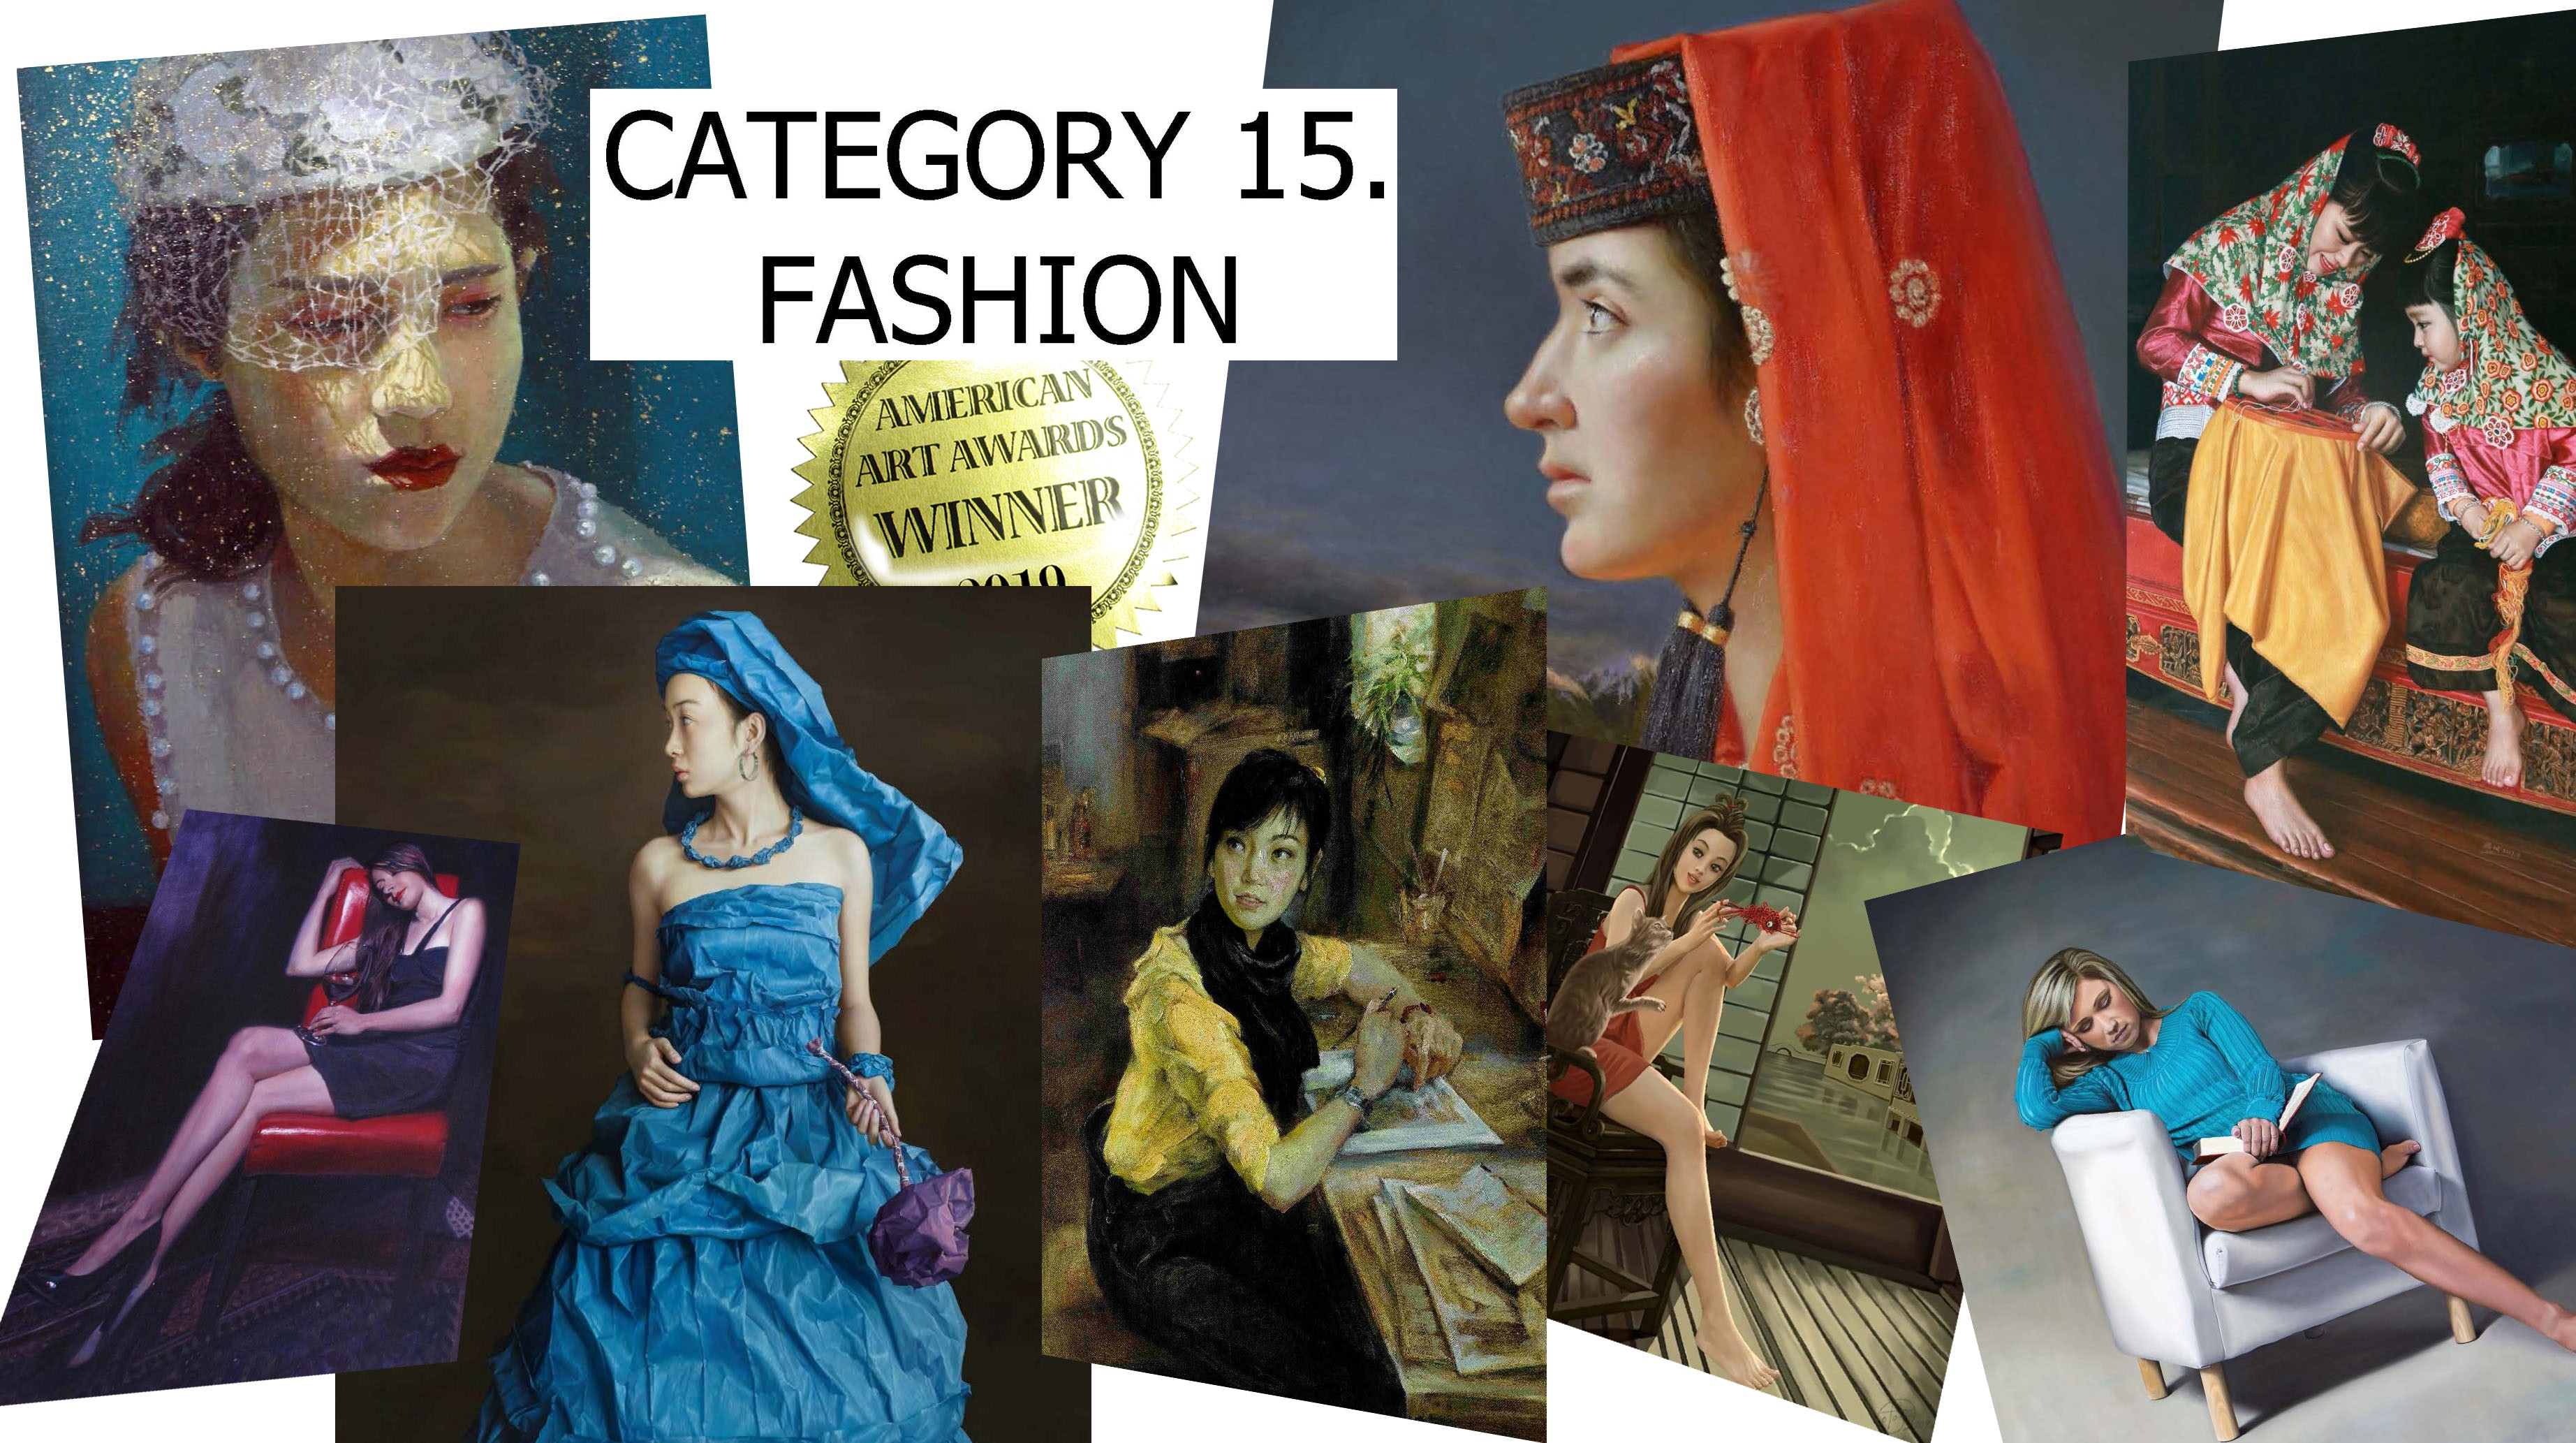 25 Best Galleries Name 2019 S Best Fashion Painters Gao Sun Zeng Zhao Arnold Yu Wang Harada Selin Mohamed By Thom Bierdz Medium